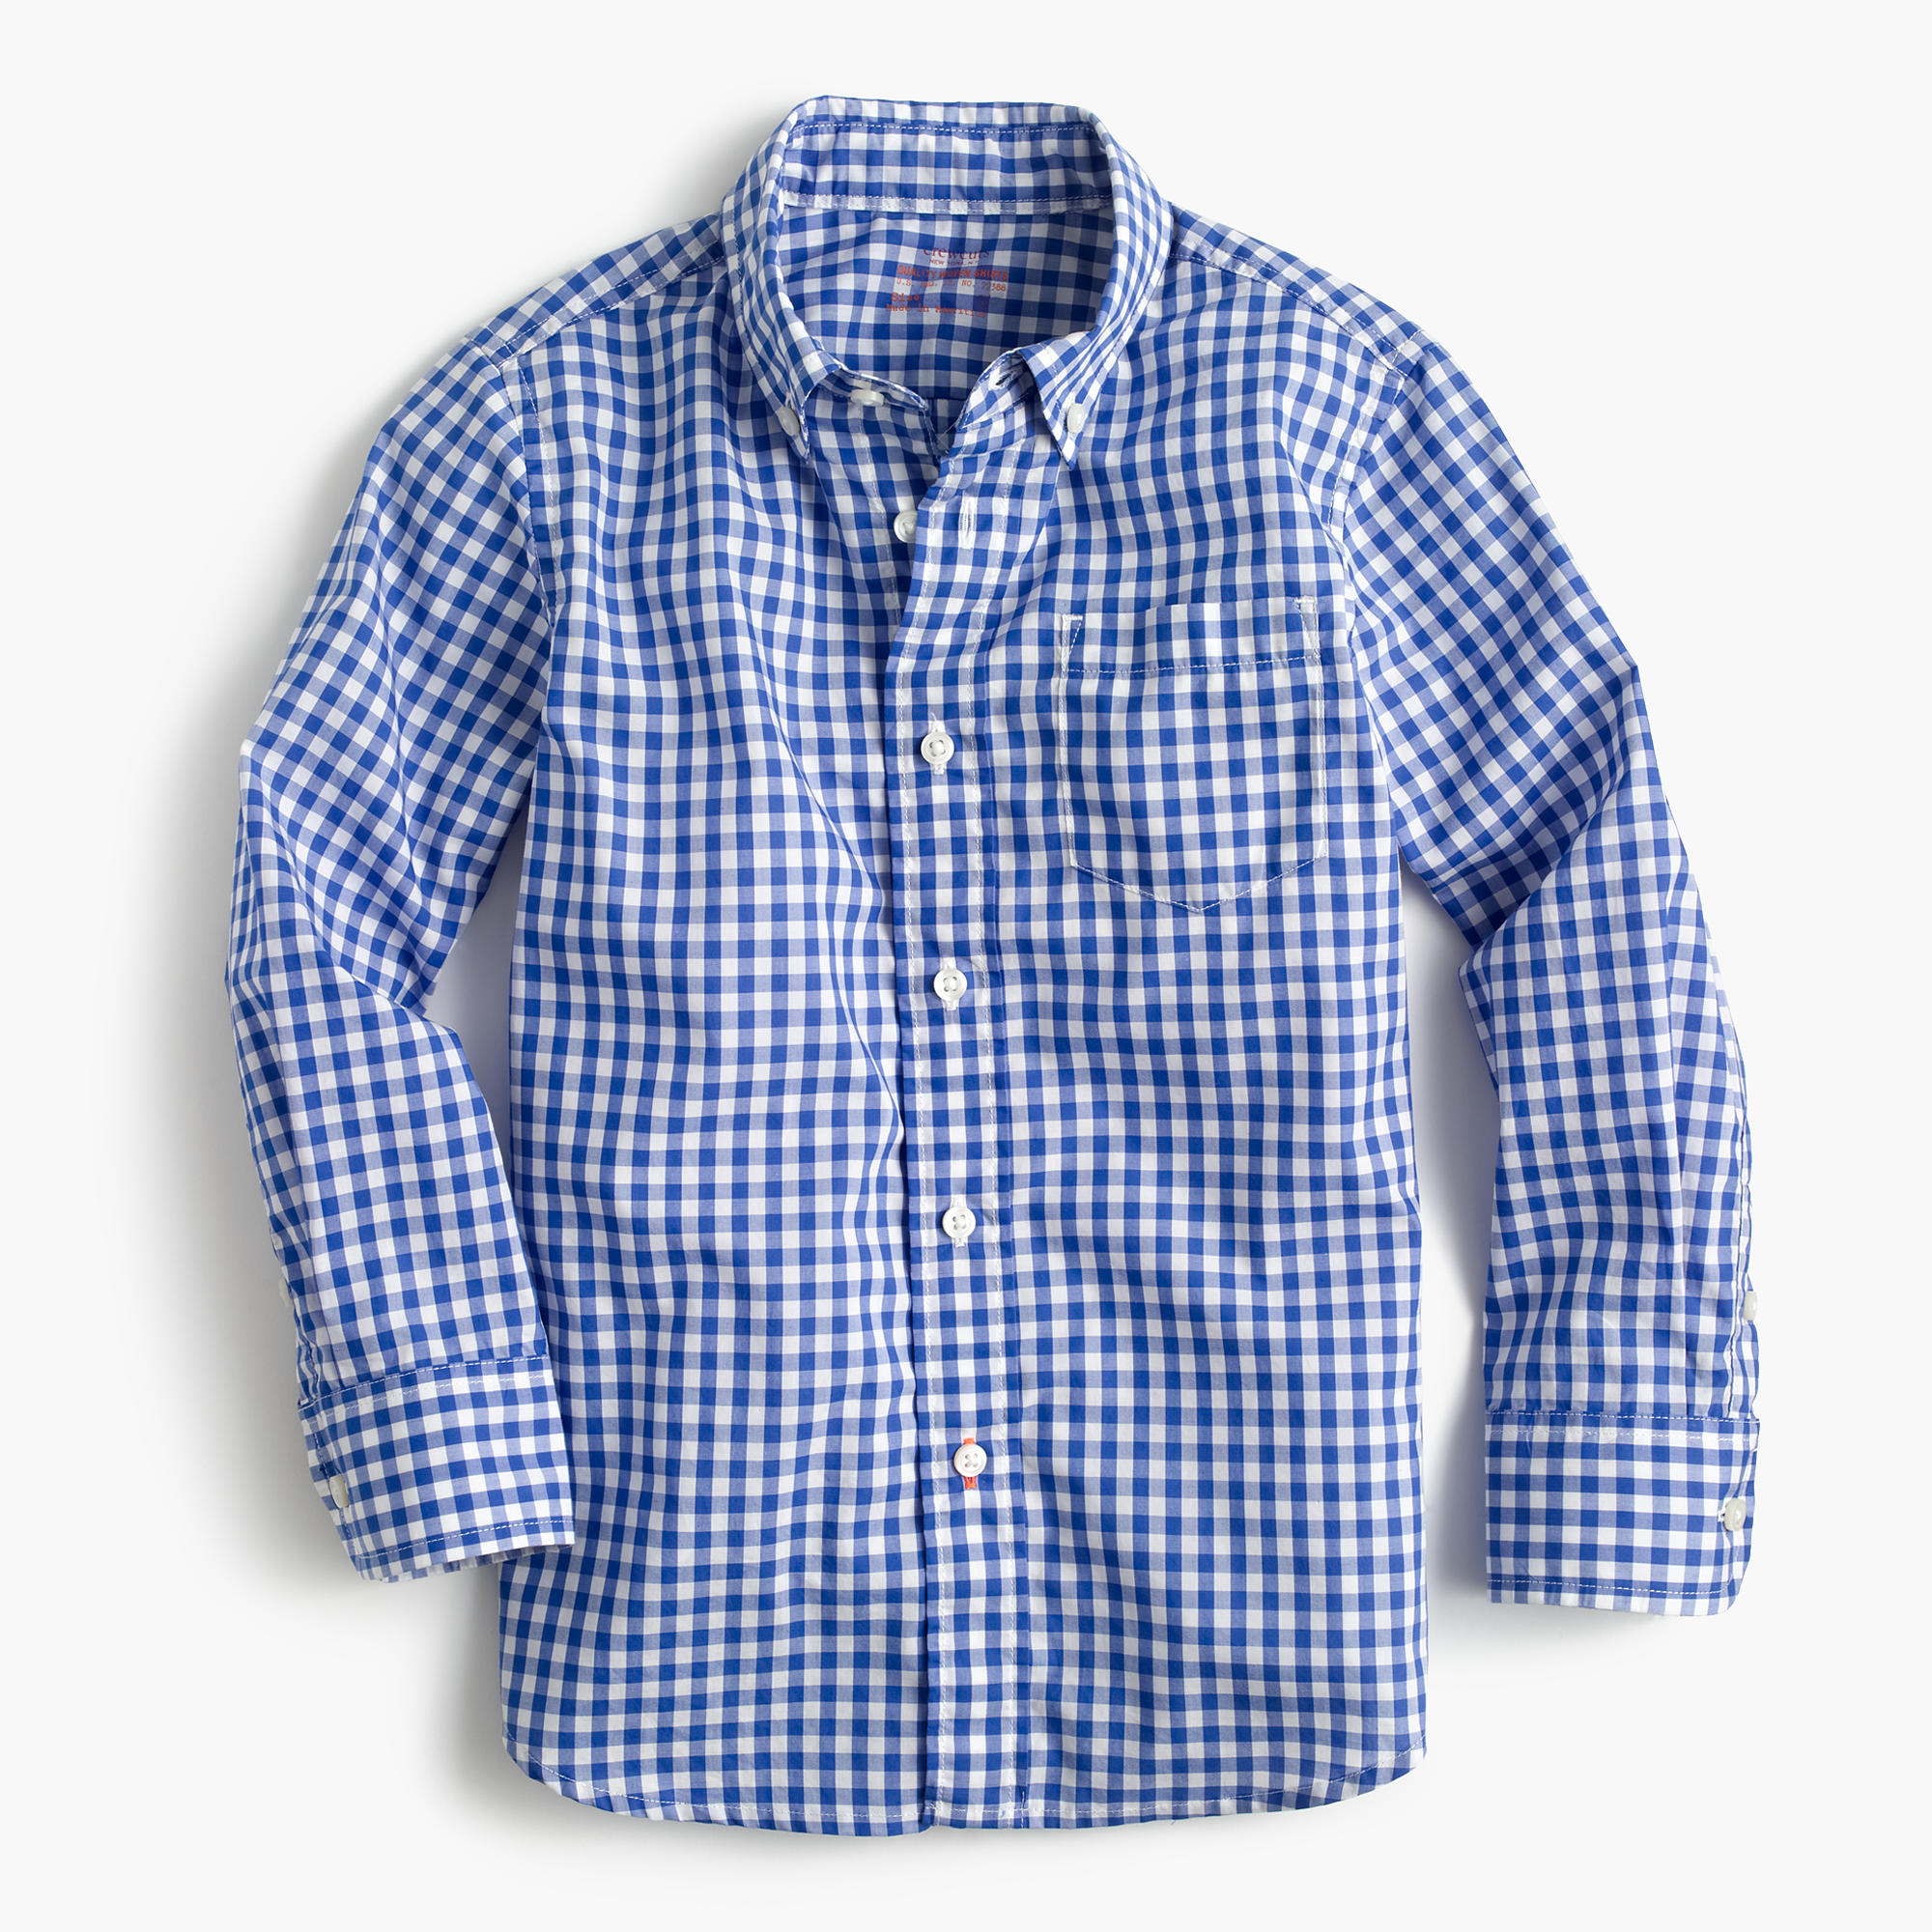 Kids 39 secret wash shirt in navy gingham boy long sleeve for Blue and white long sleeve shirt